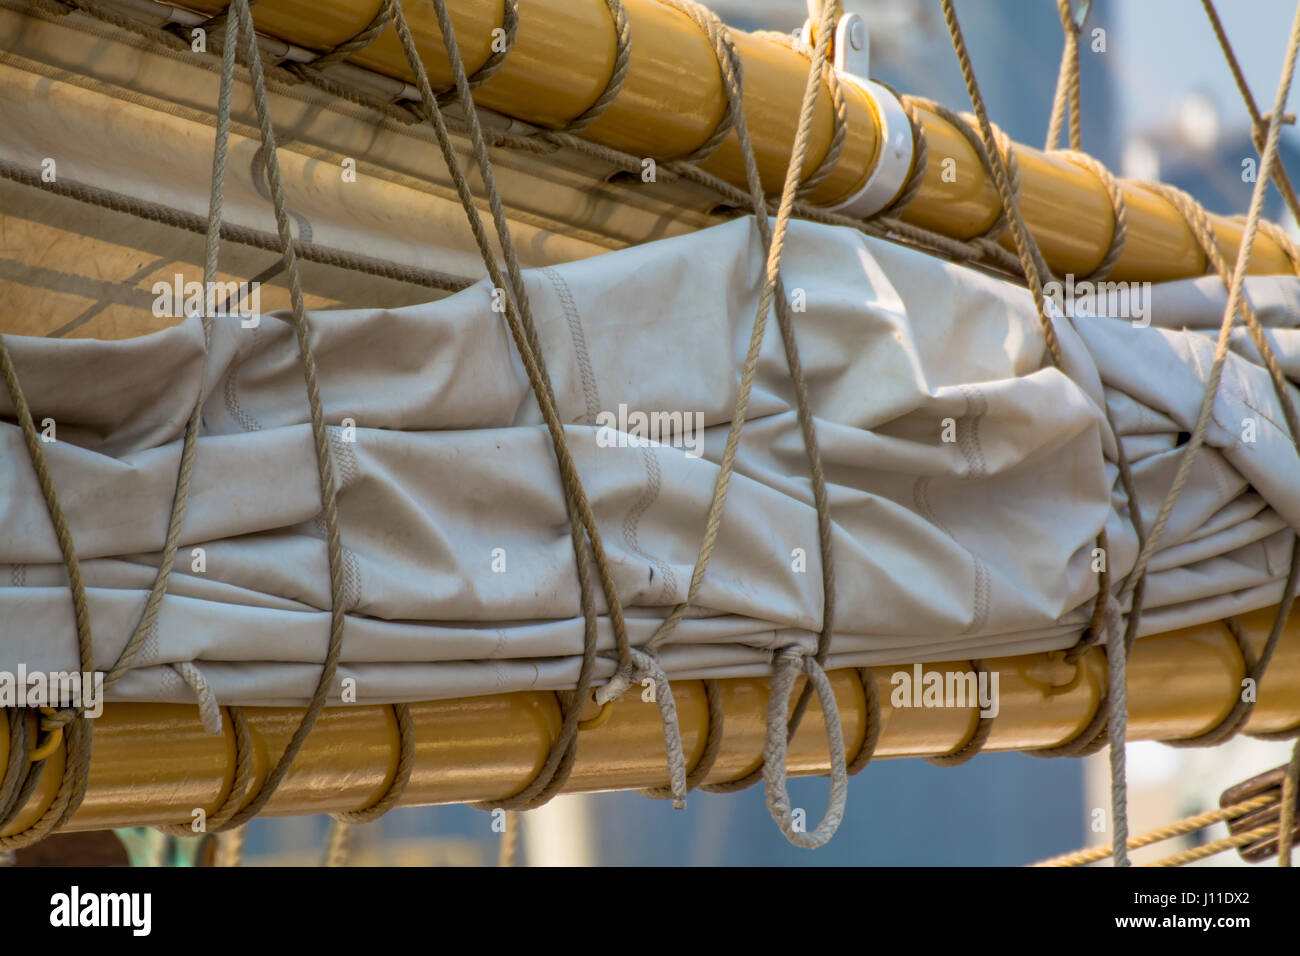 Side View of Ship Sails Tied Up - Stock Image